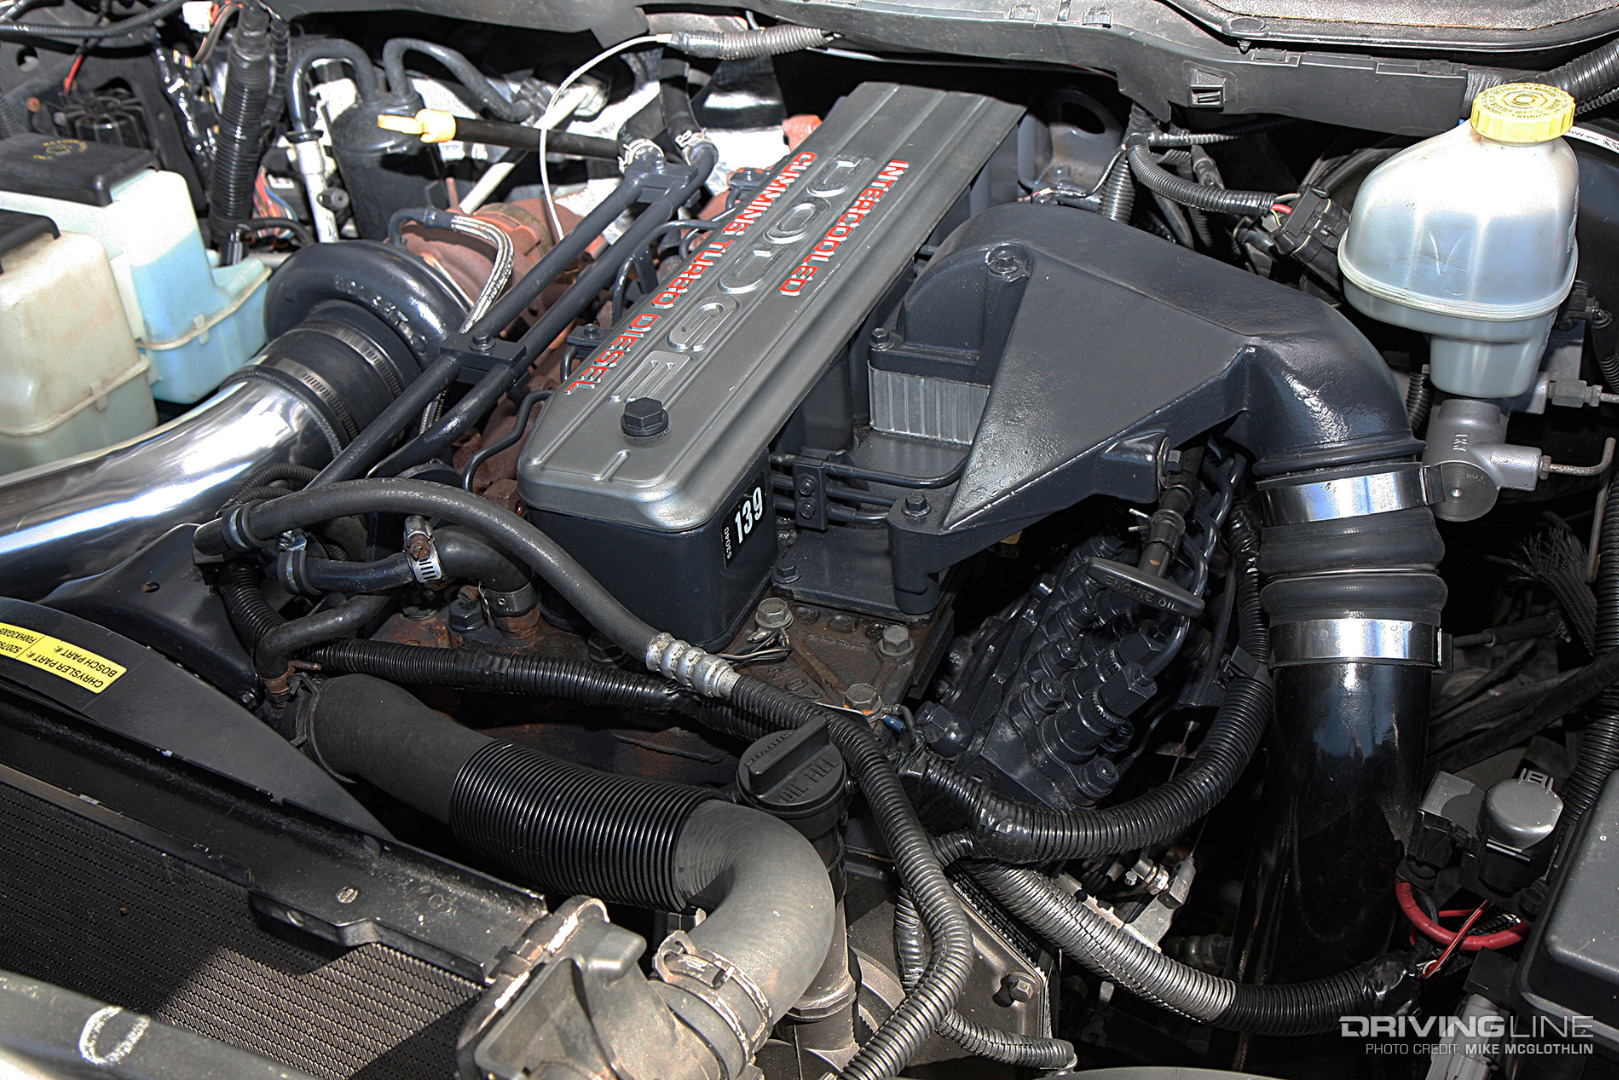 11 Reasons Why the 12 Valve Cummins Is the Ultimate Diesel